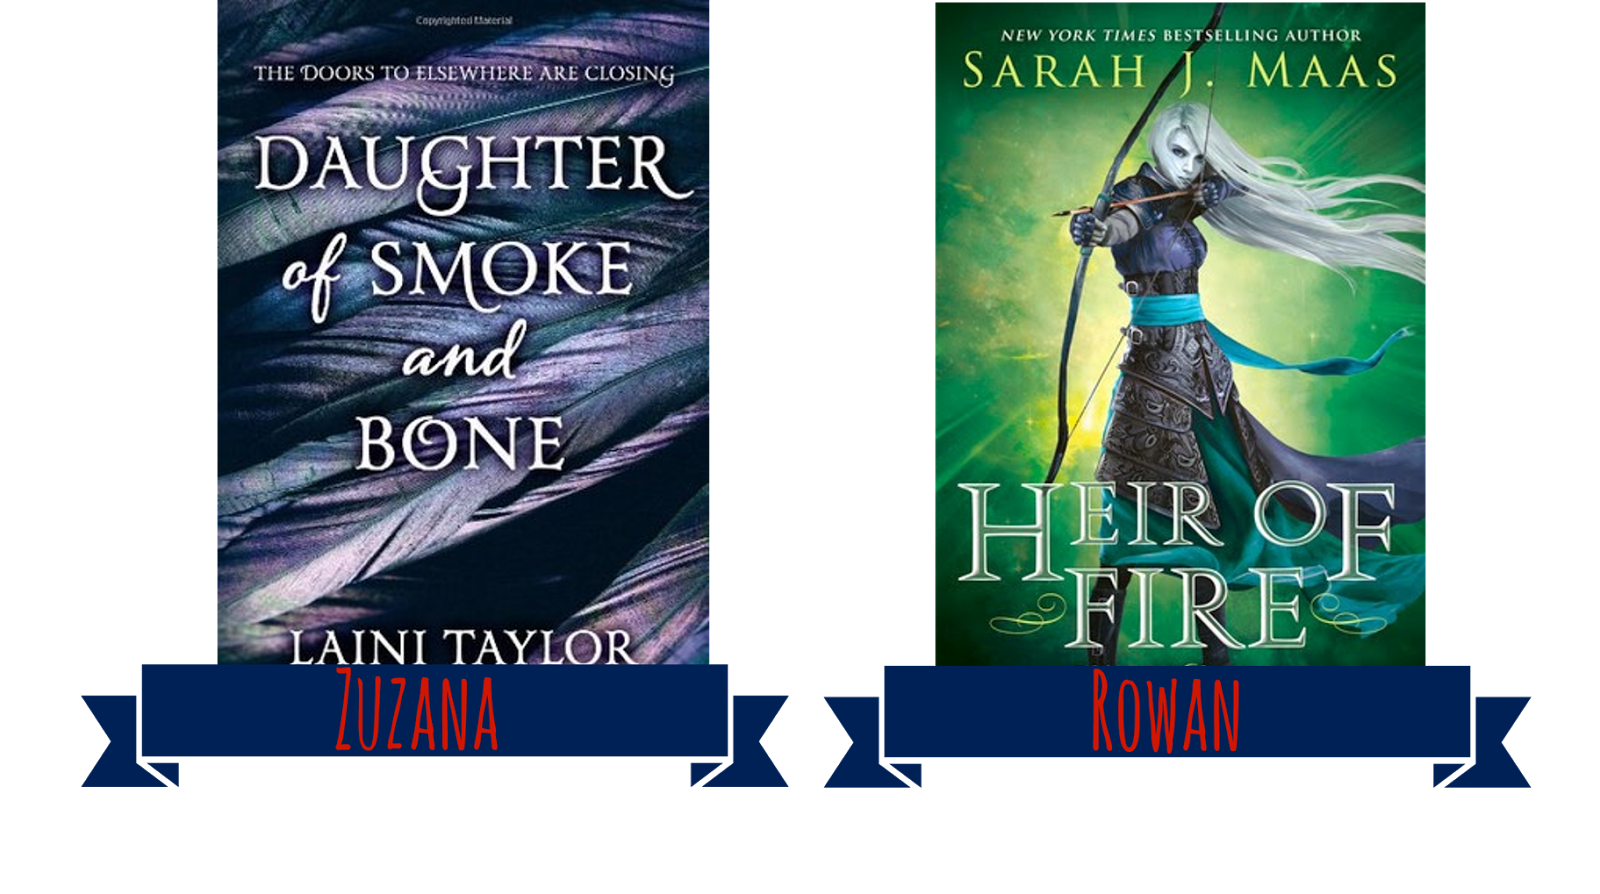 Daughter of Smoke and Bone + Heir of Fire book covers